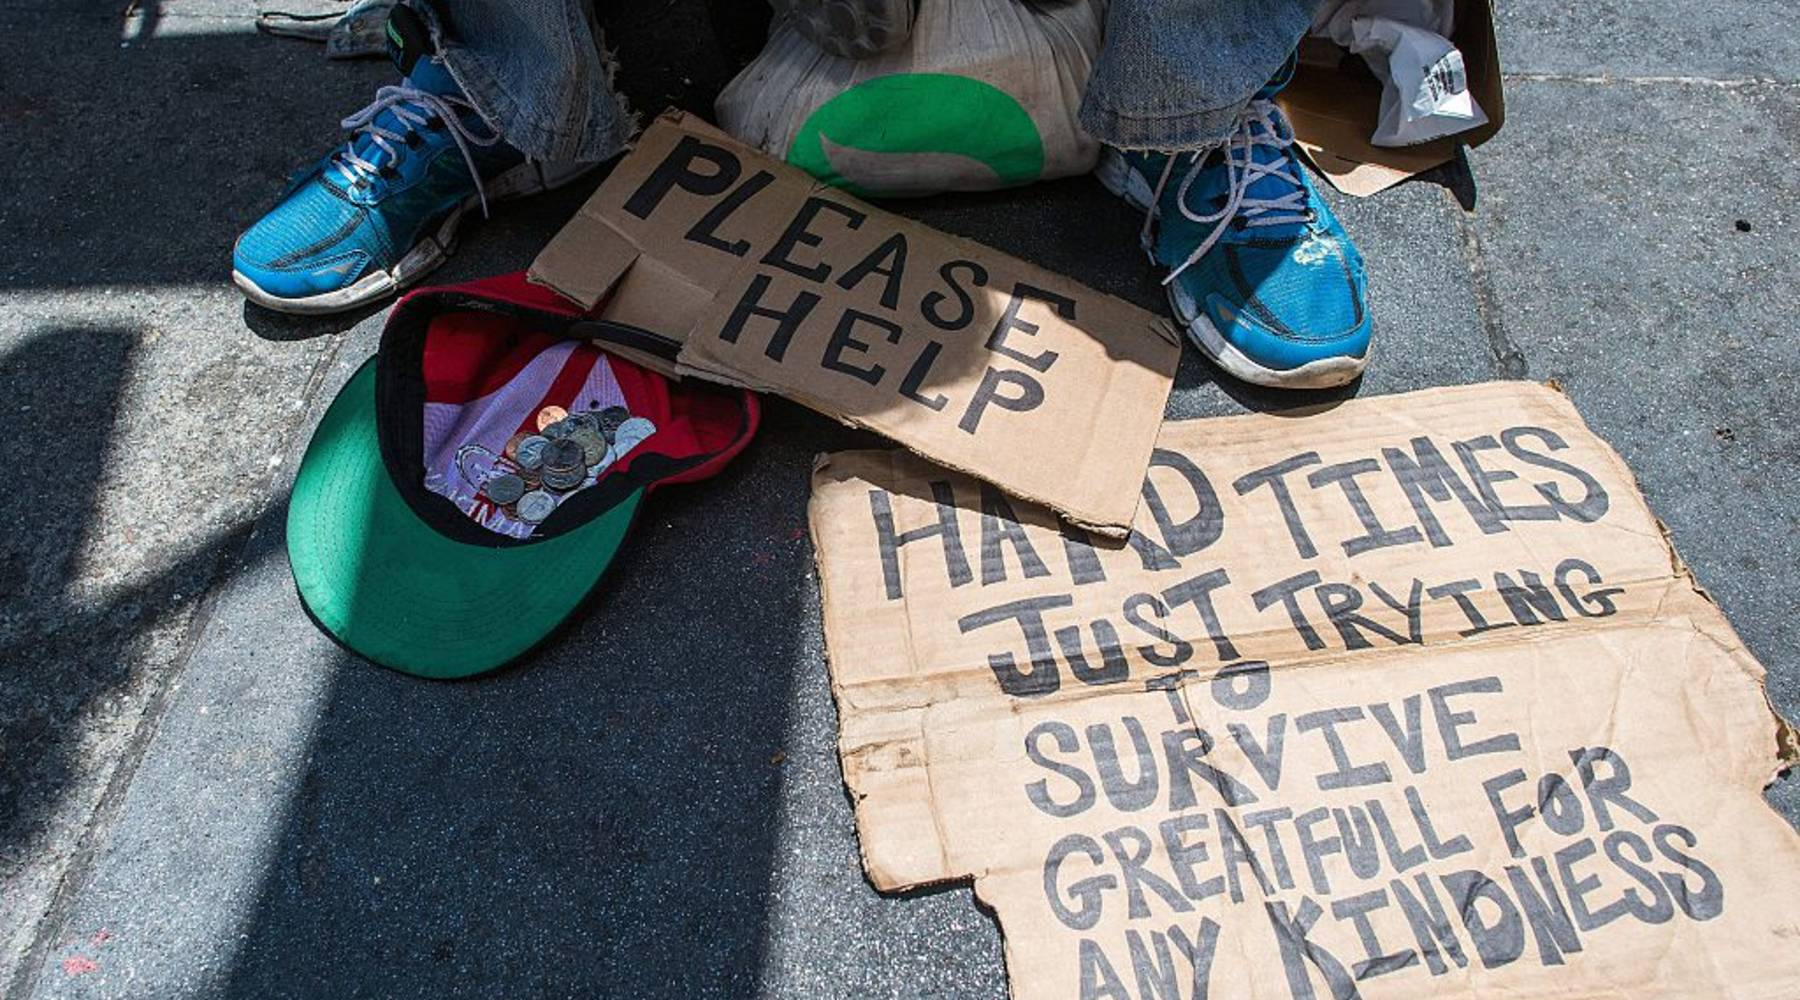 Should Big Tech pay more to help the homeless in San Francisco?